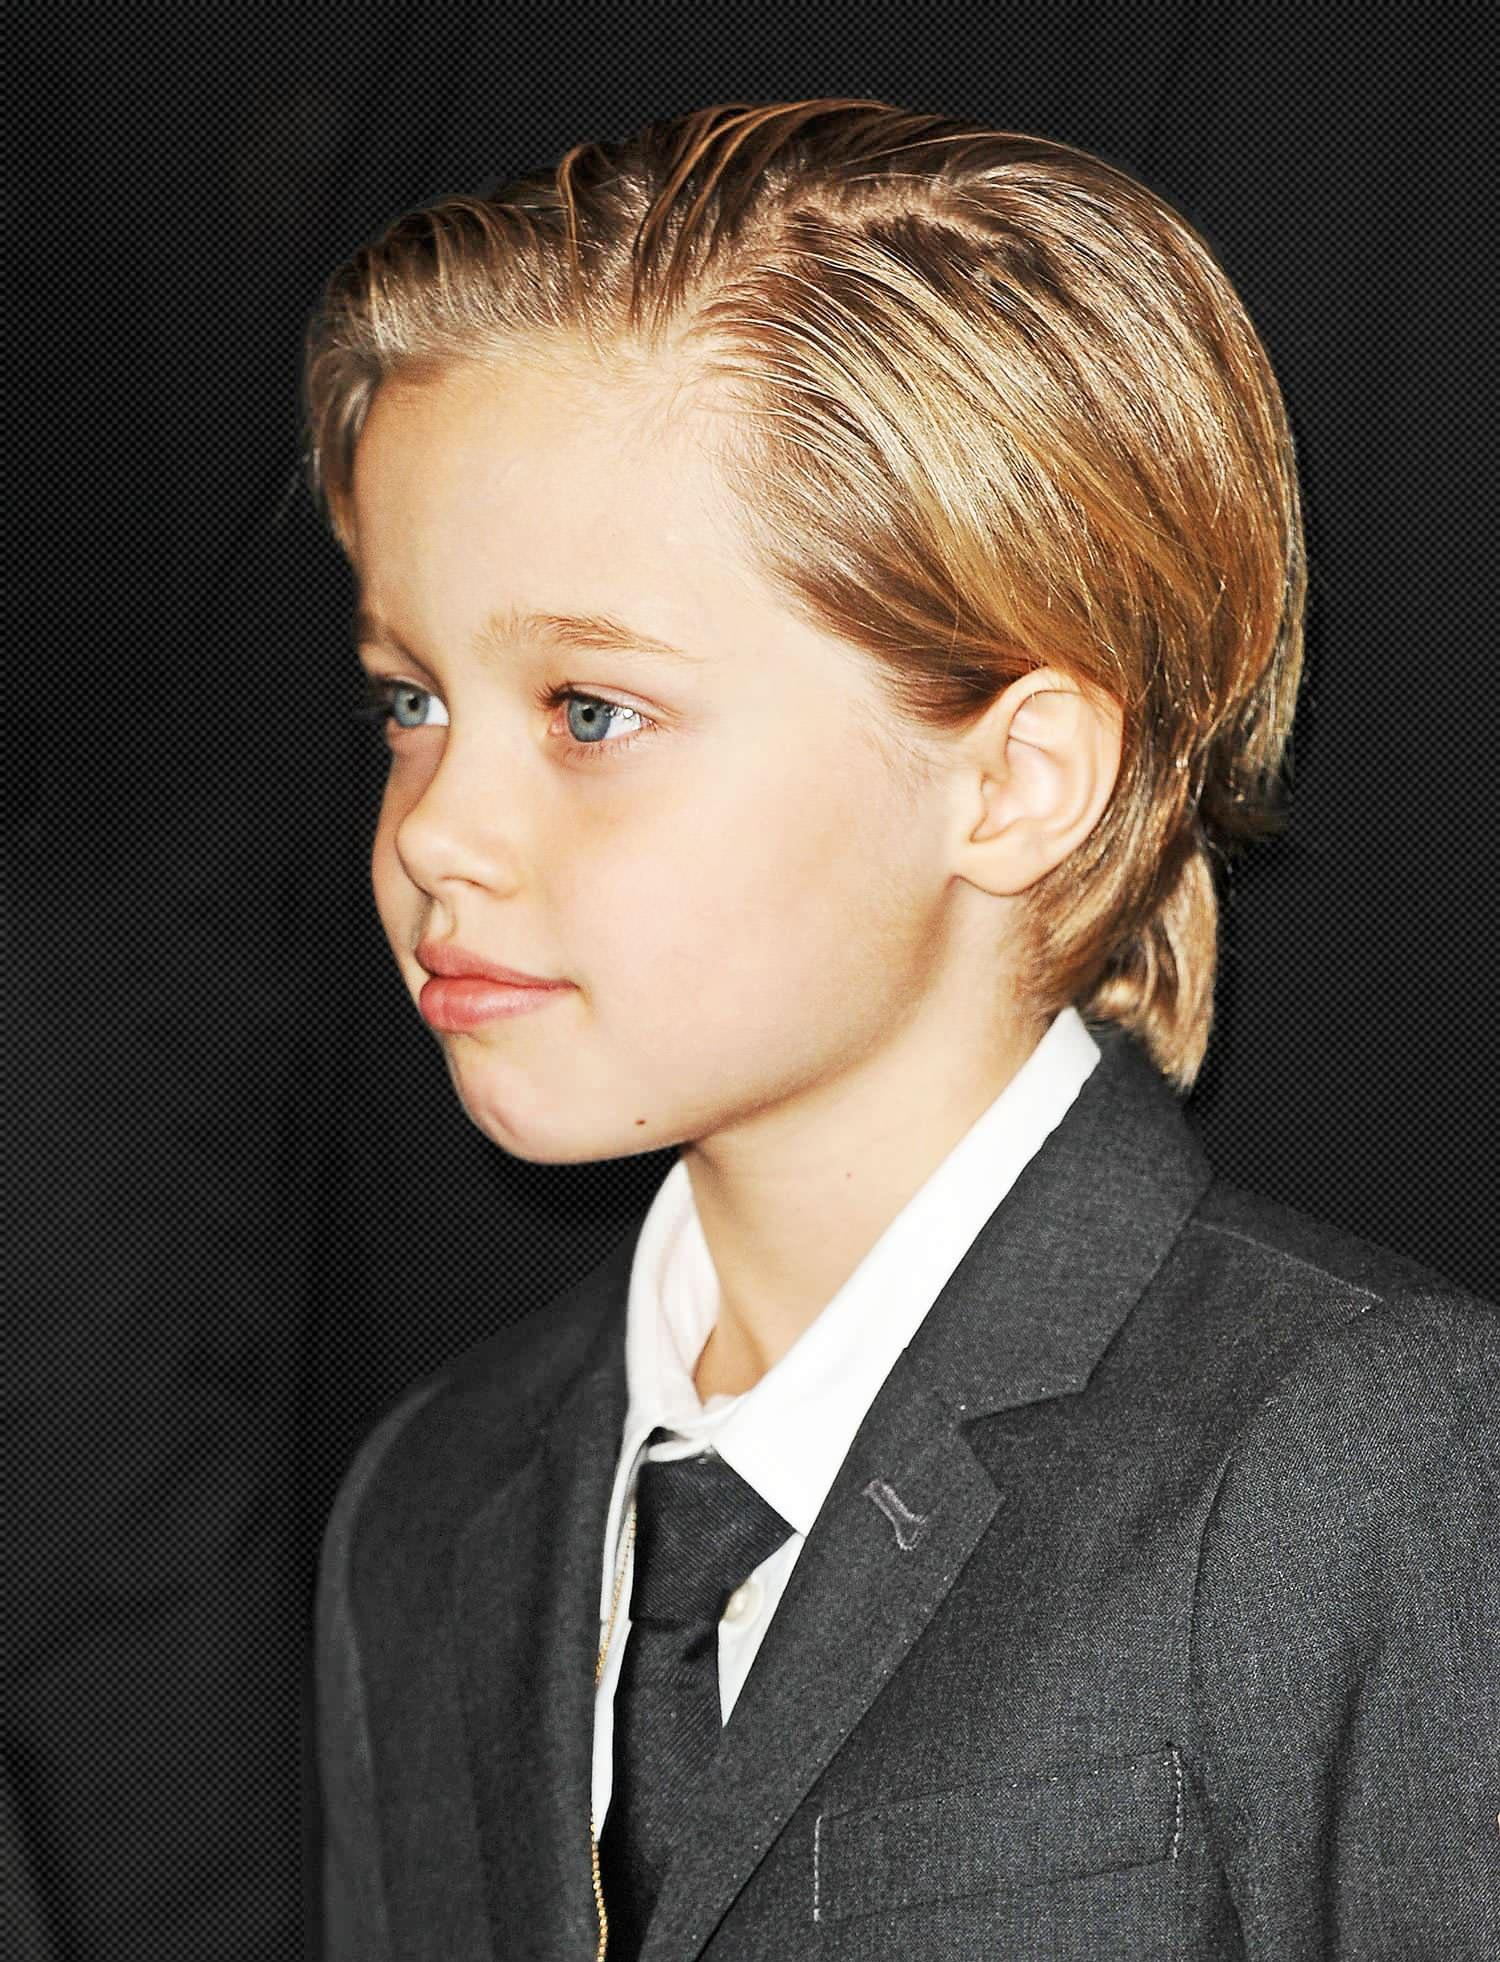 Shiloh Jolie Pitt Steals The Spotlight In A Suit